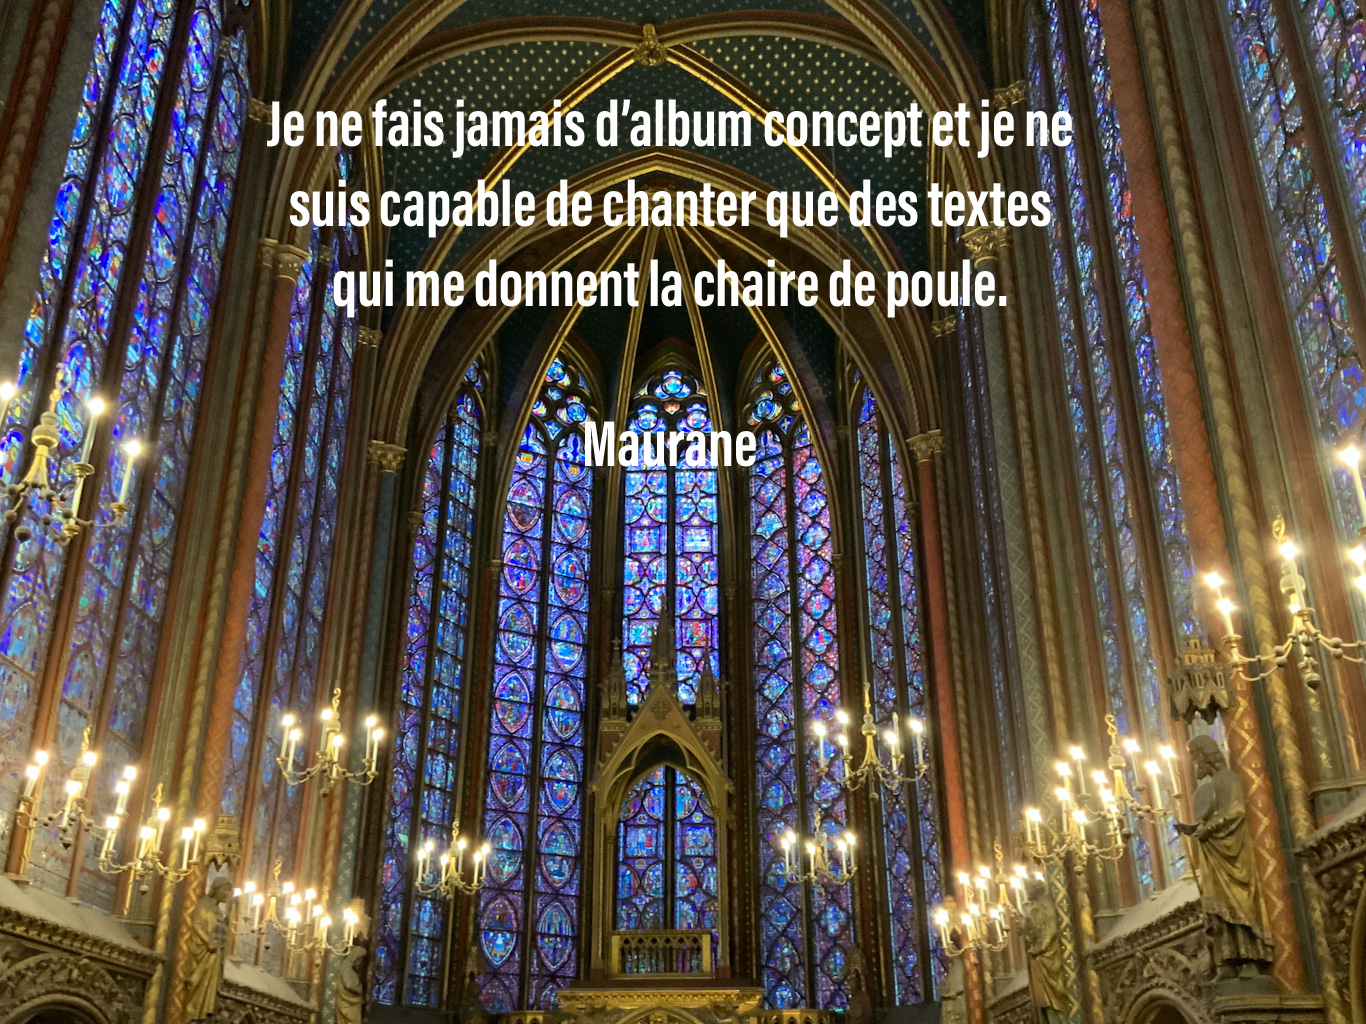 Citation de Maurane sur le fond des vitraux de la Sainte Chapelle à Paris